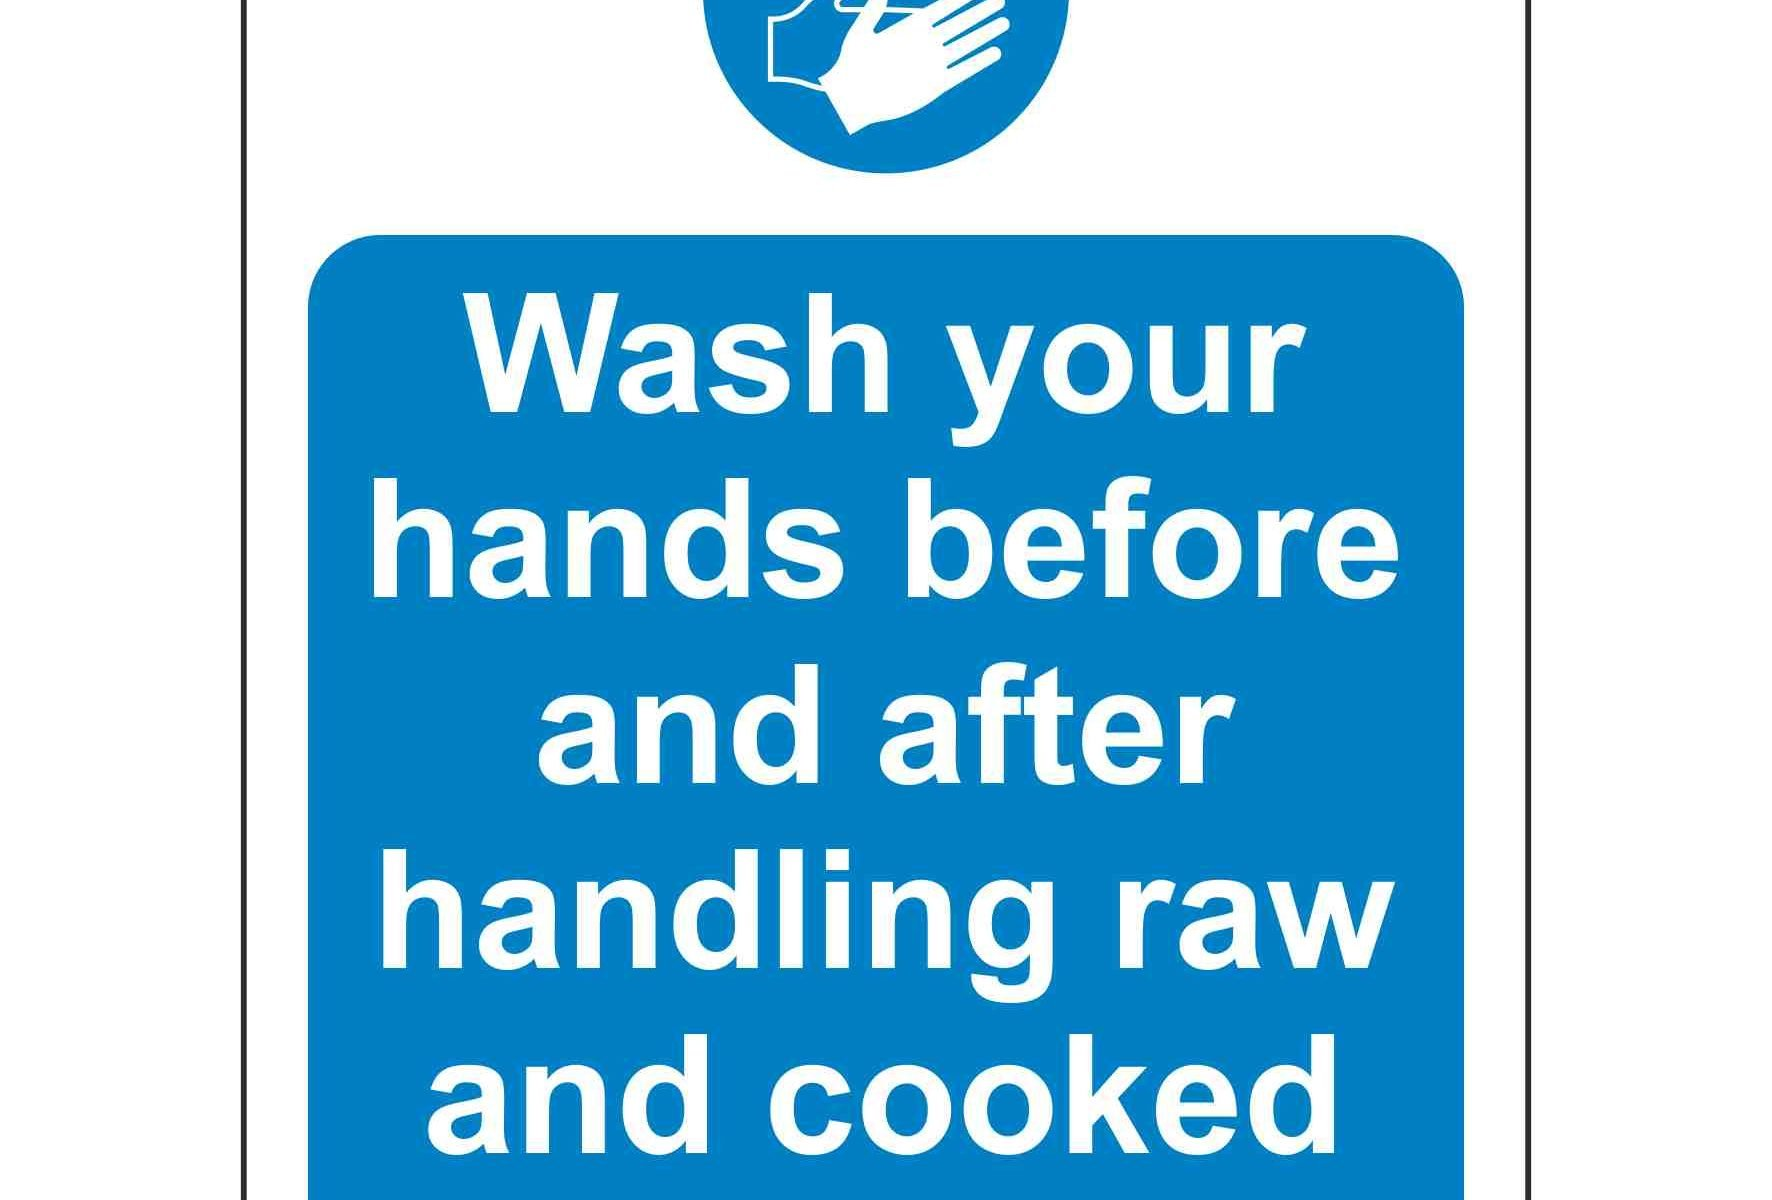 Wash your hands before and after handling raw and cooked food